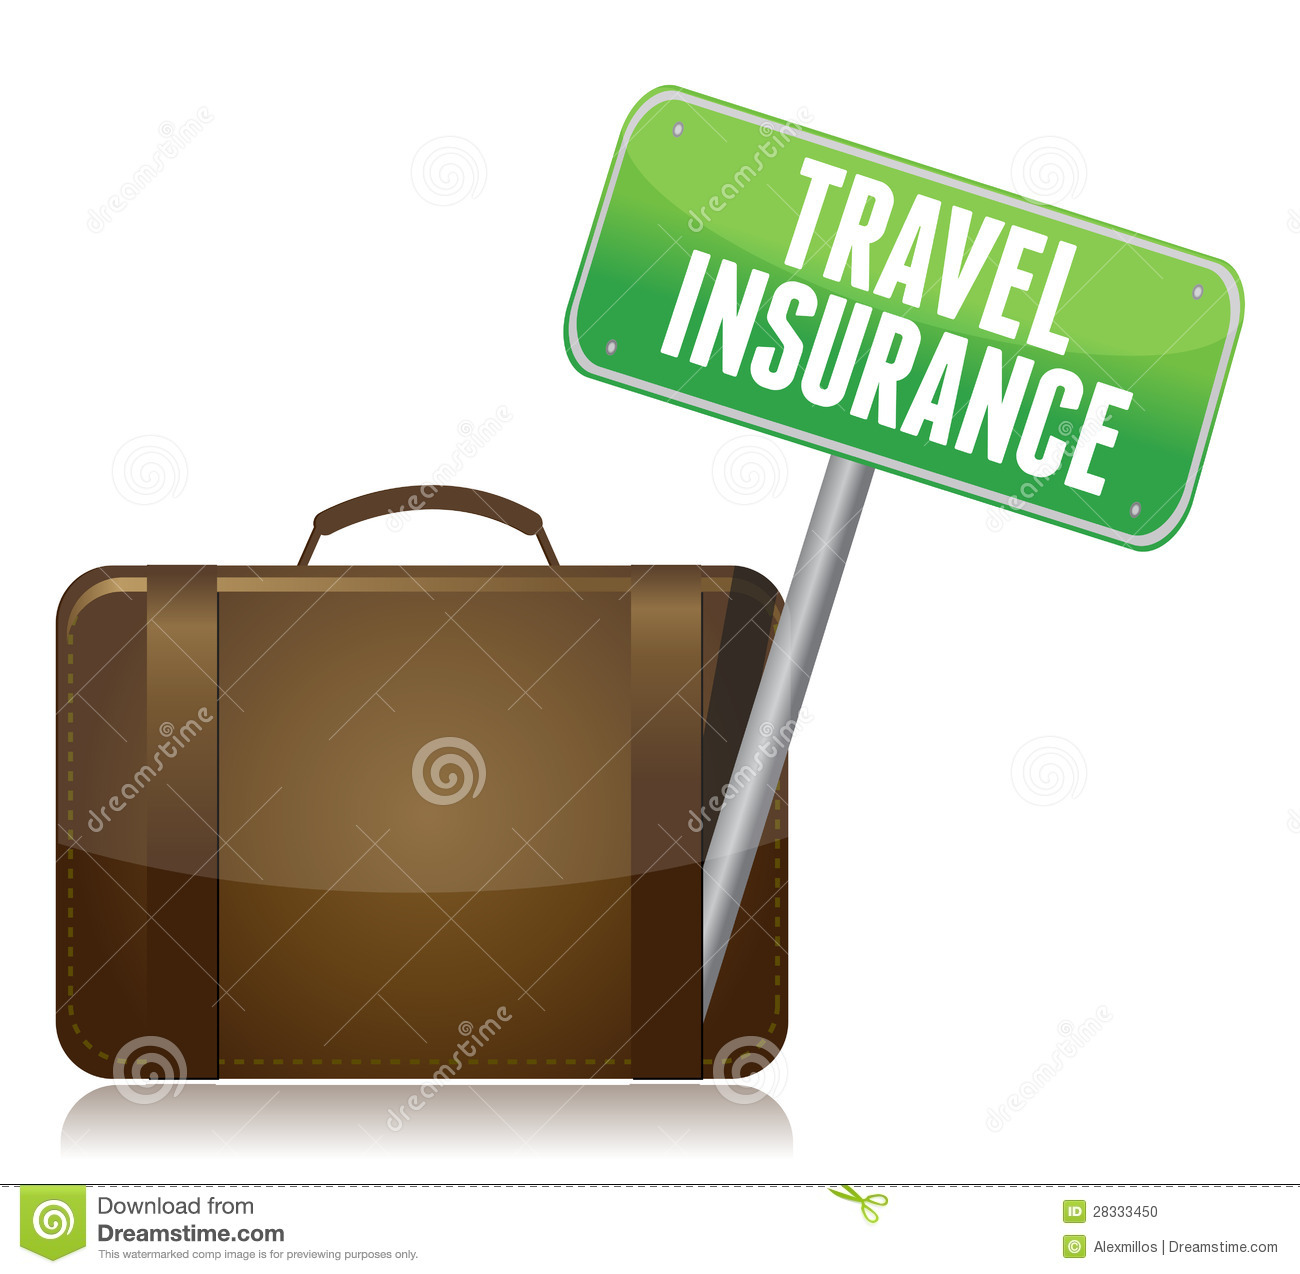 Travel Insurance Quotes Usa: Travel Insurance Concept Stock Photo